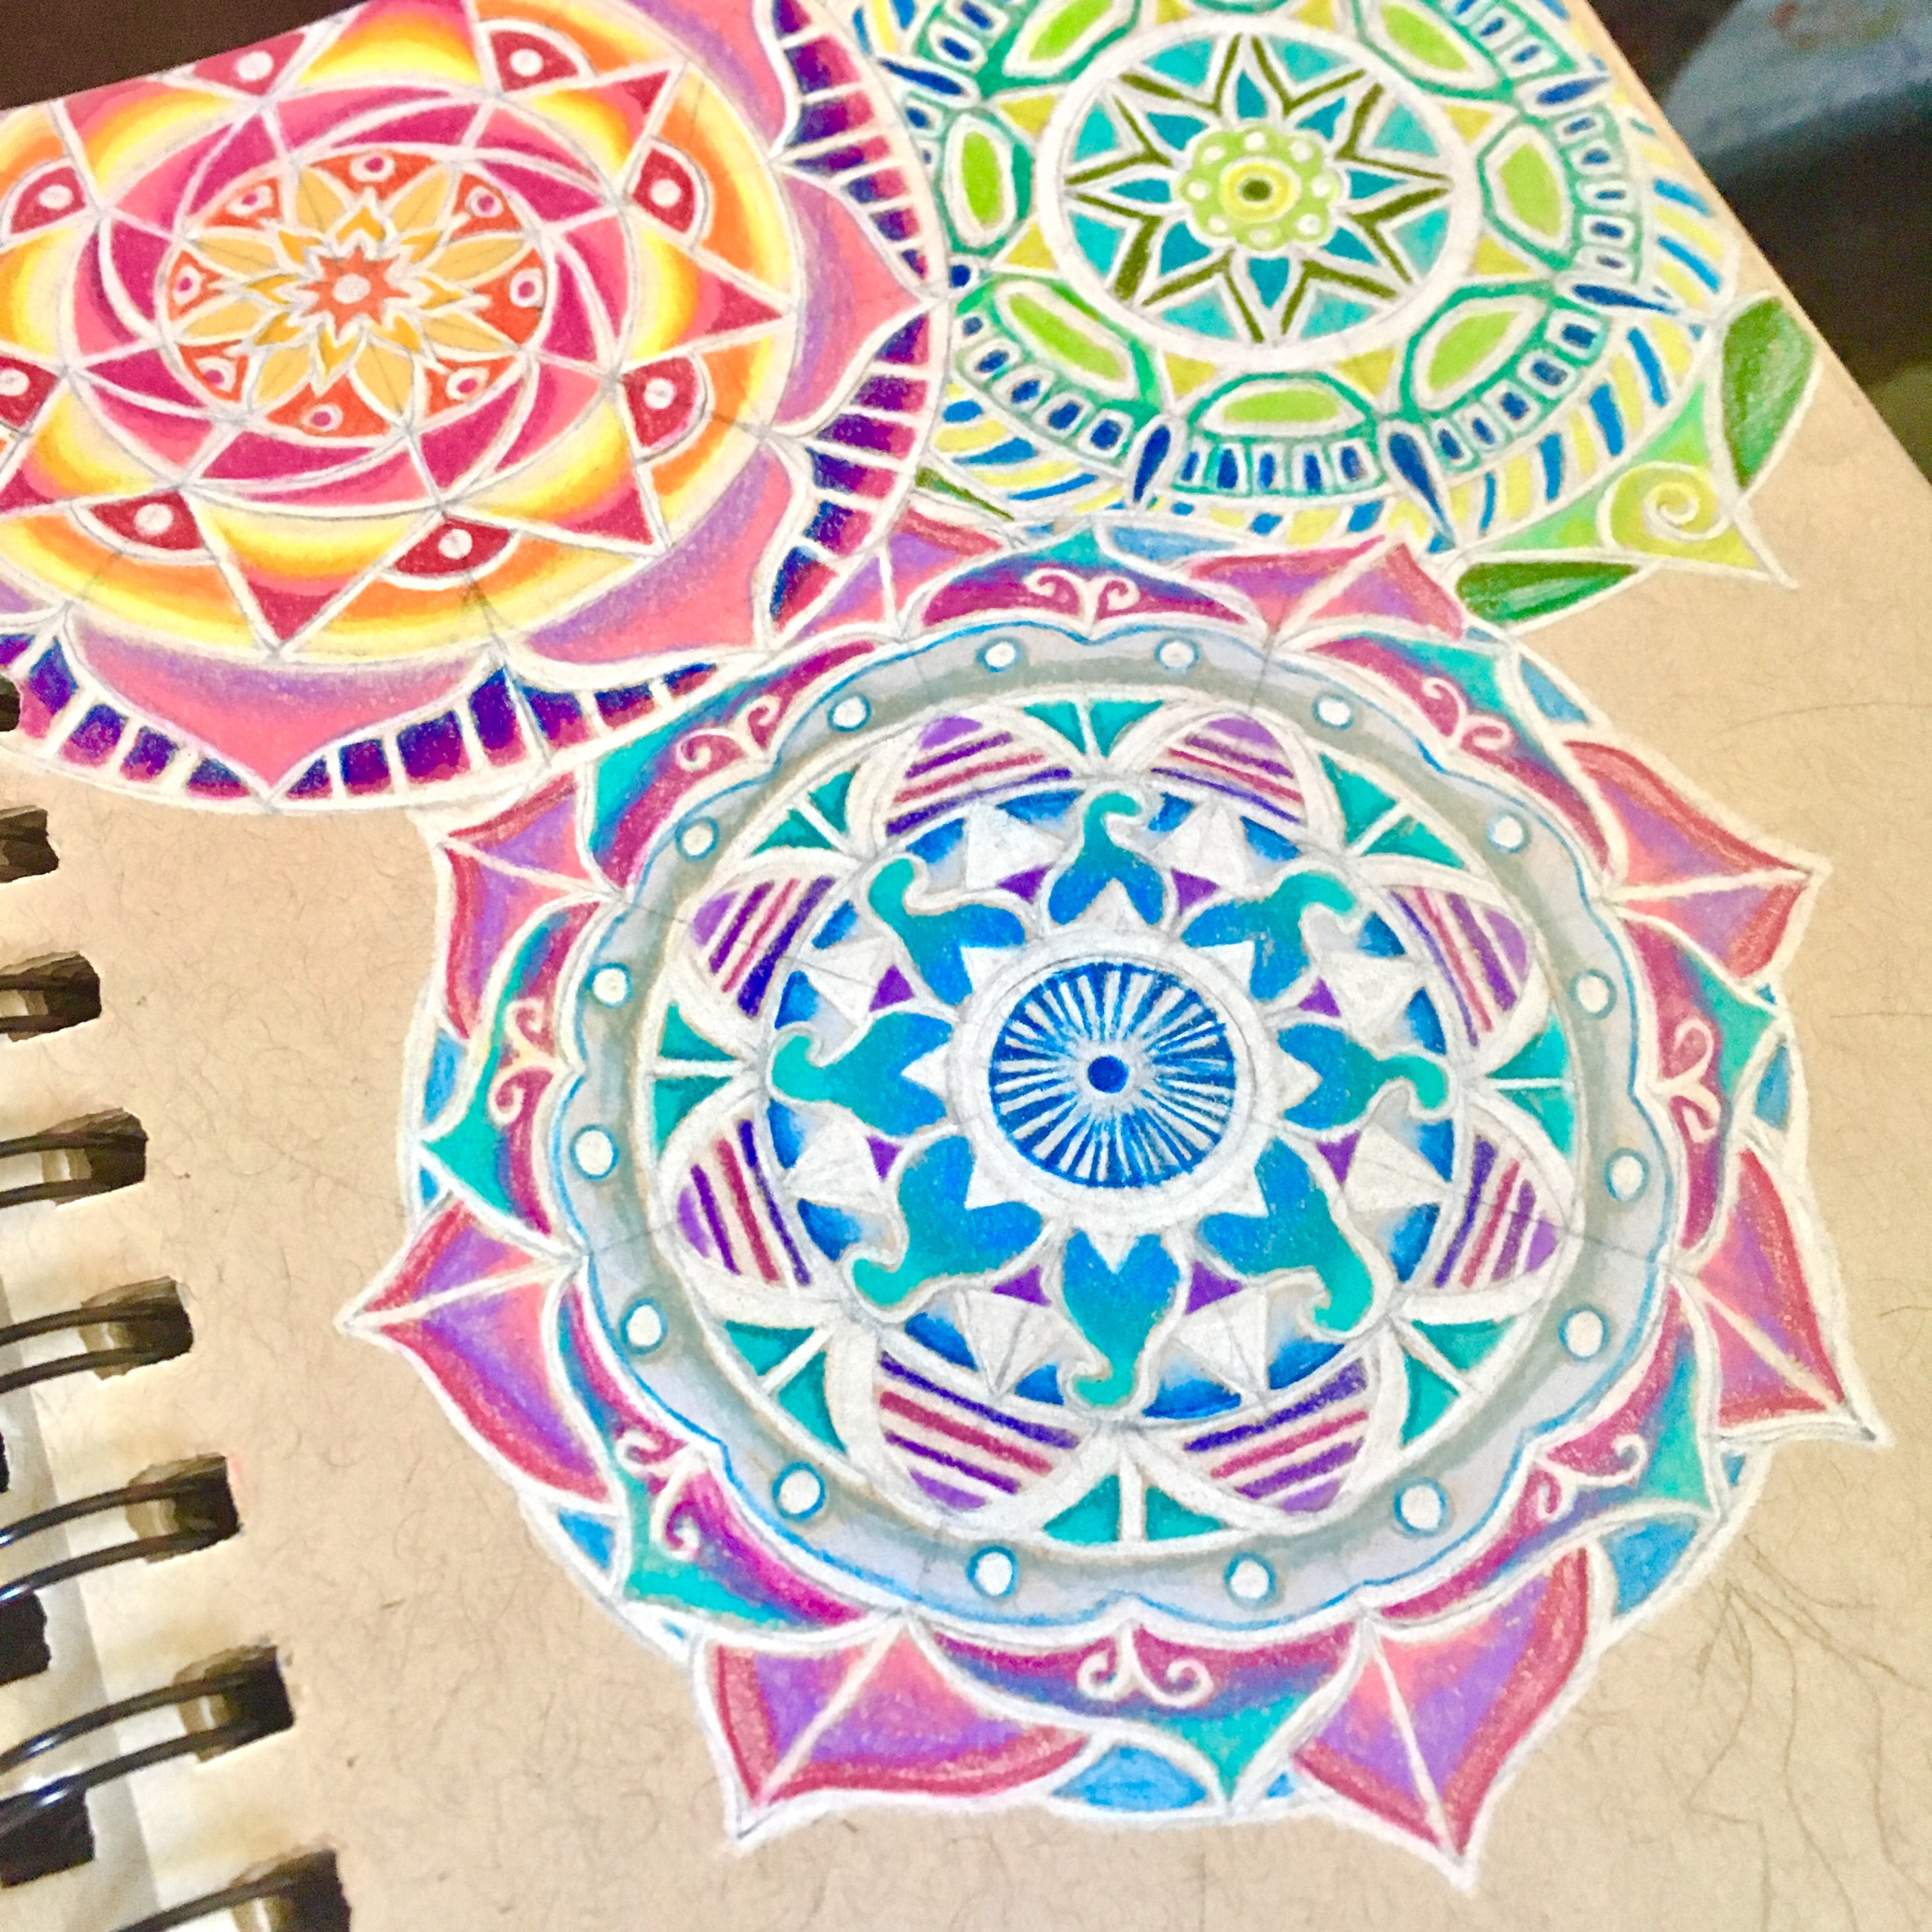 Mandala magic prismacolor penci - she_draws_for_love | ello